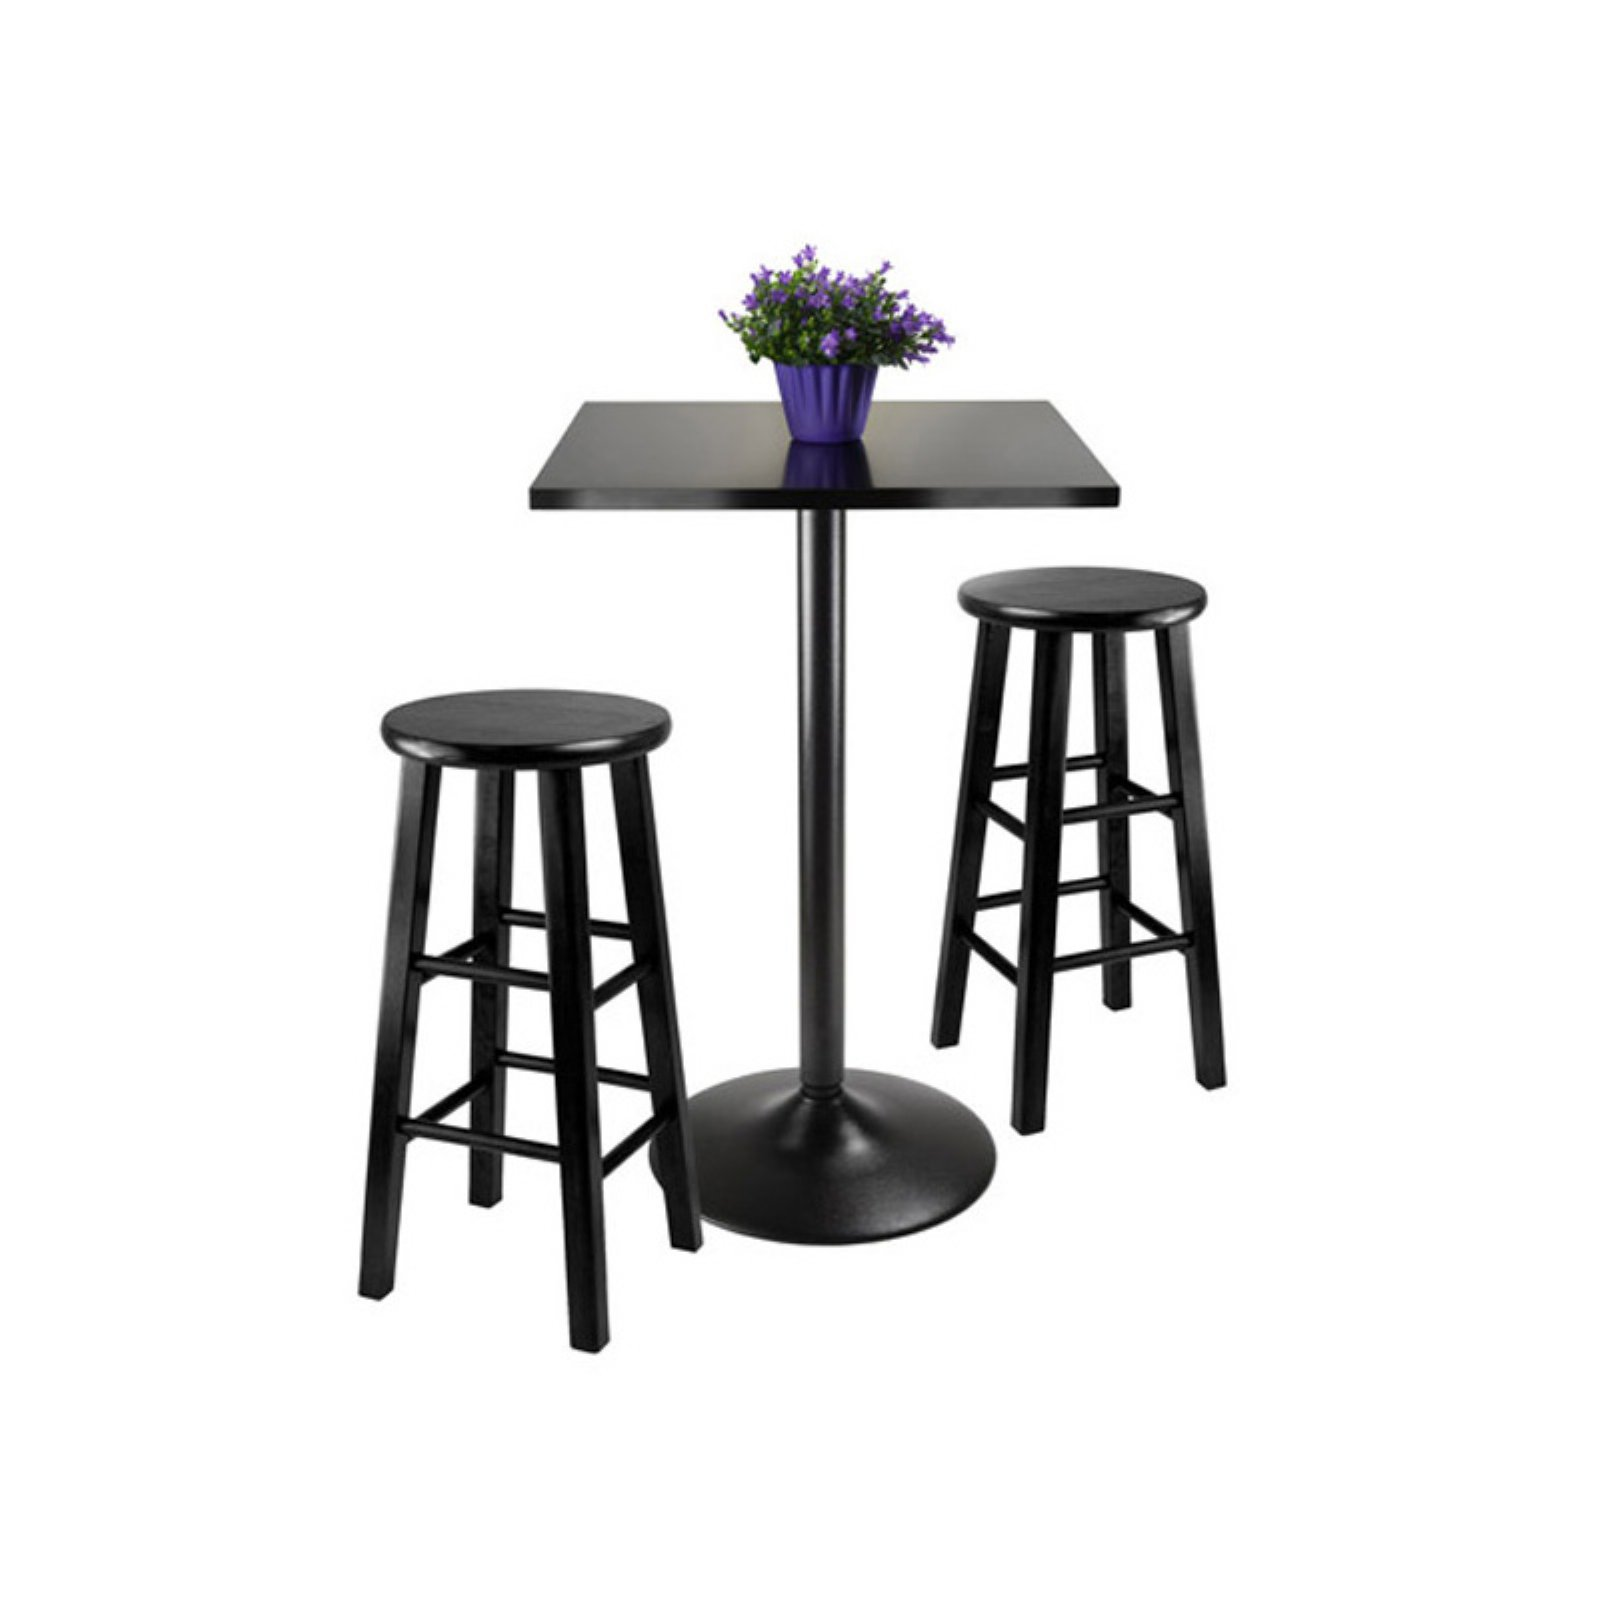 Winsome Wood Obsidian 3pc Black Pub Table and Counter Stools Set